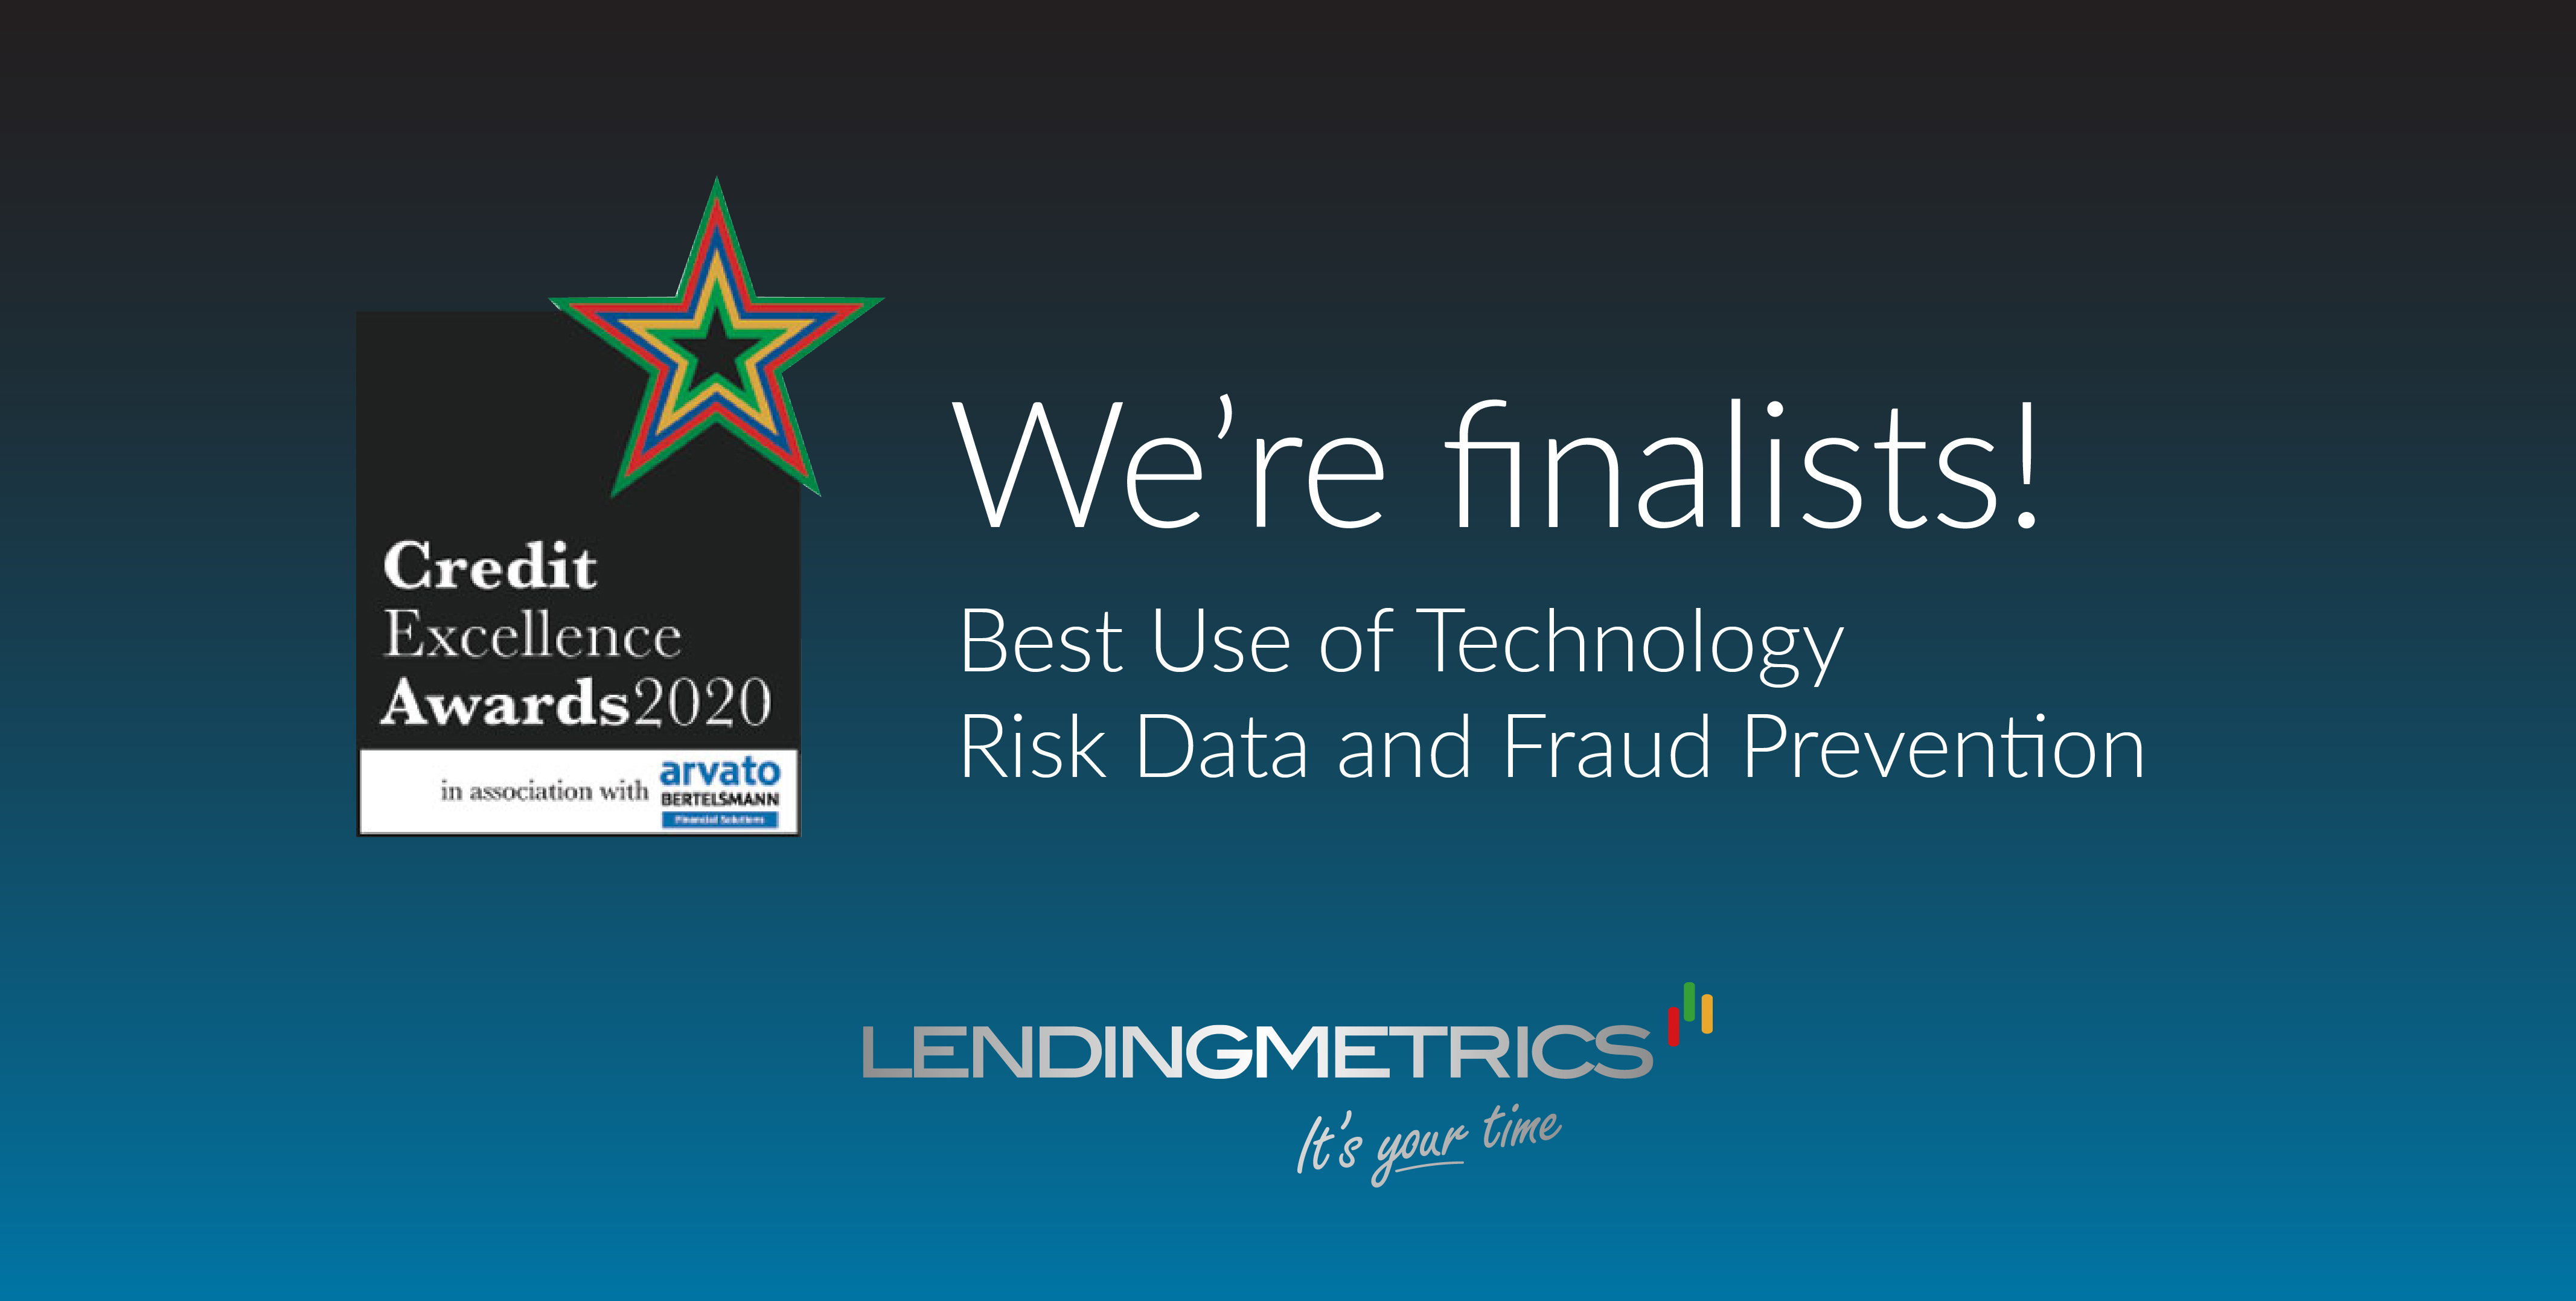 LendingMetrics announced as finalists for two awards at Credit Excellence Awards 2020